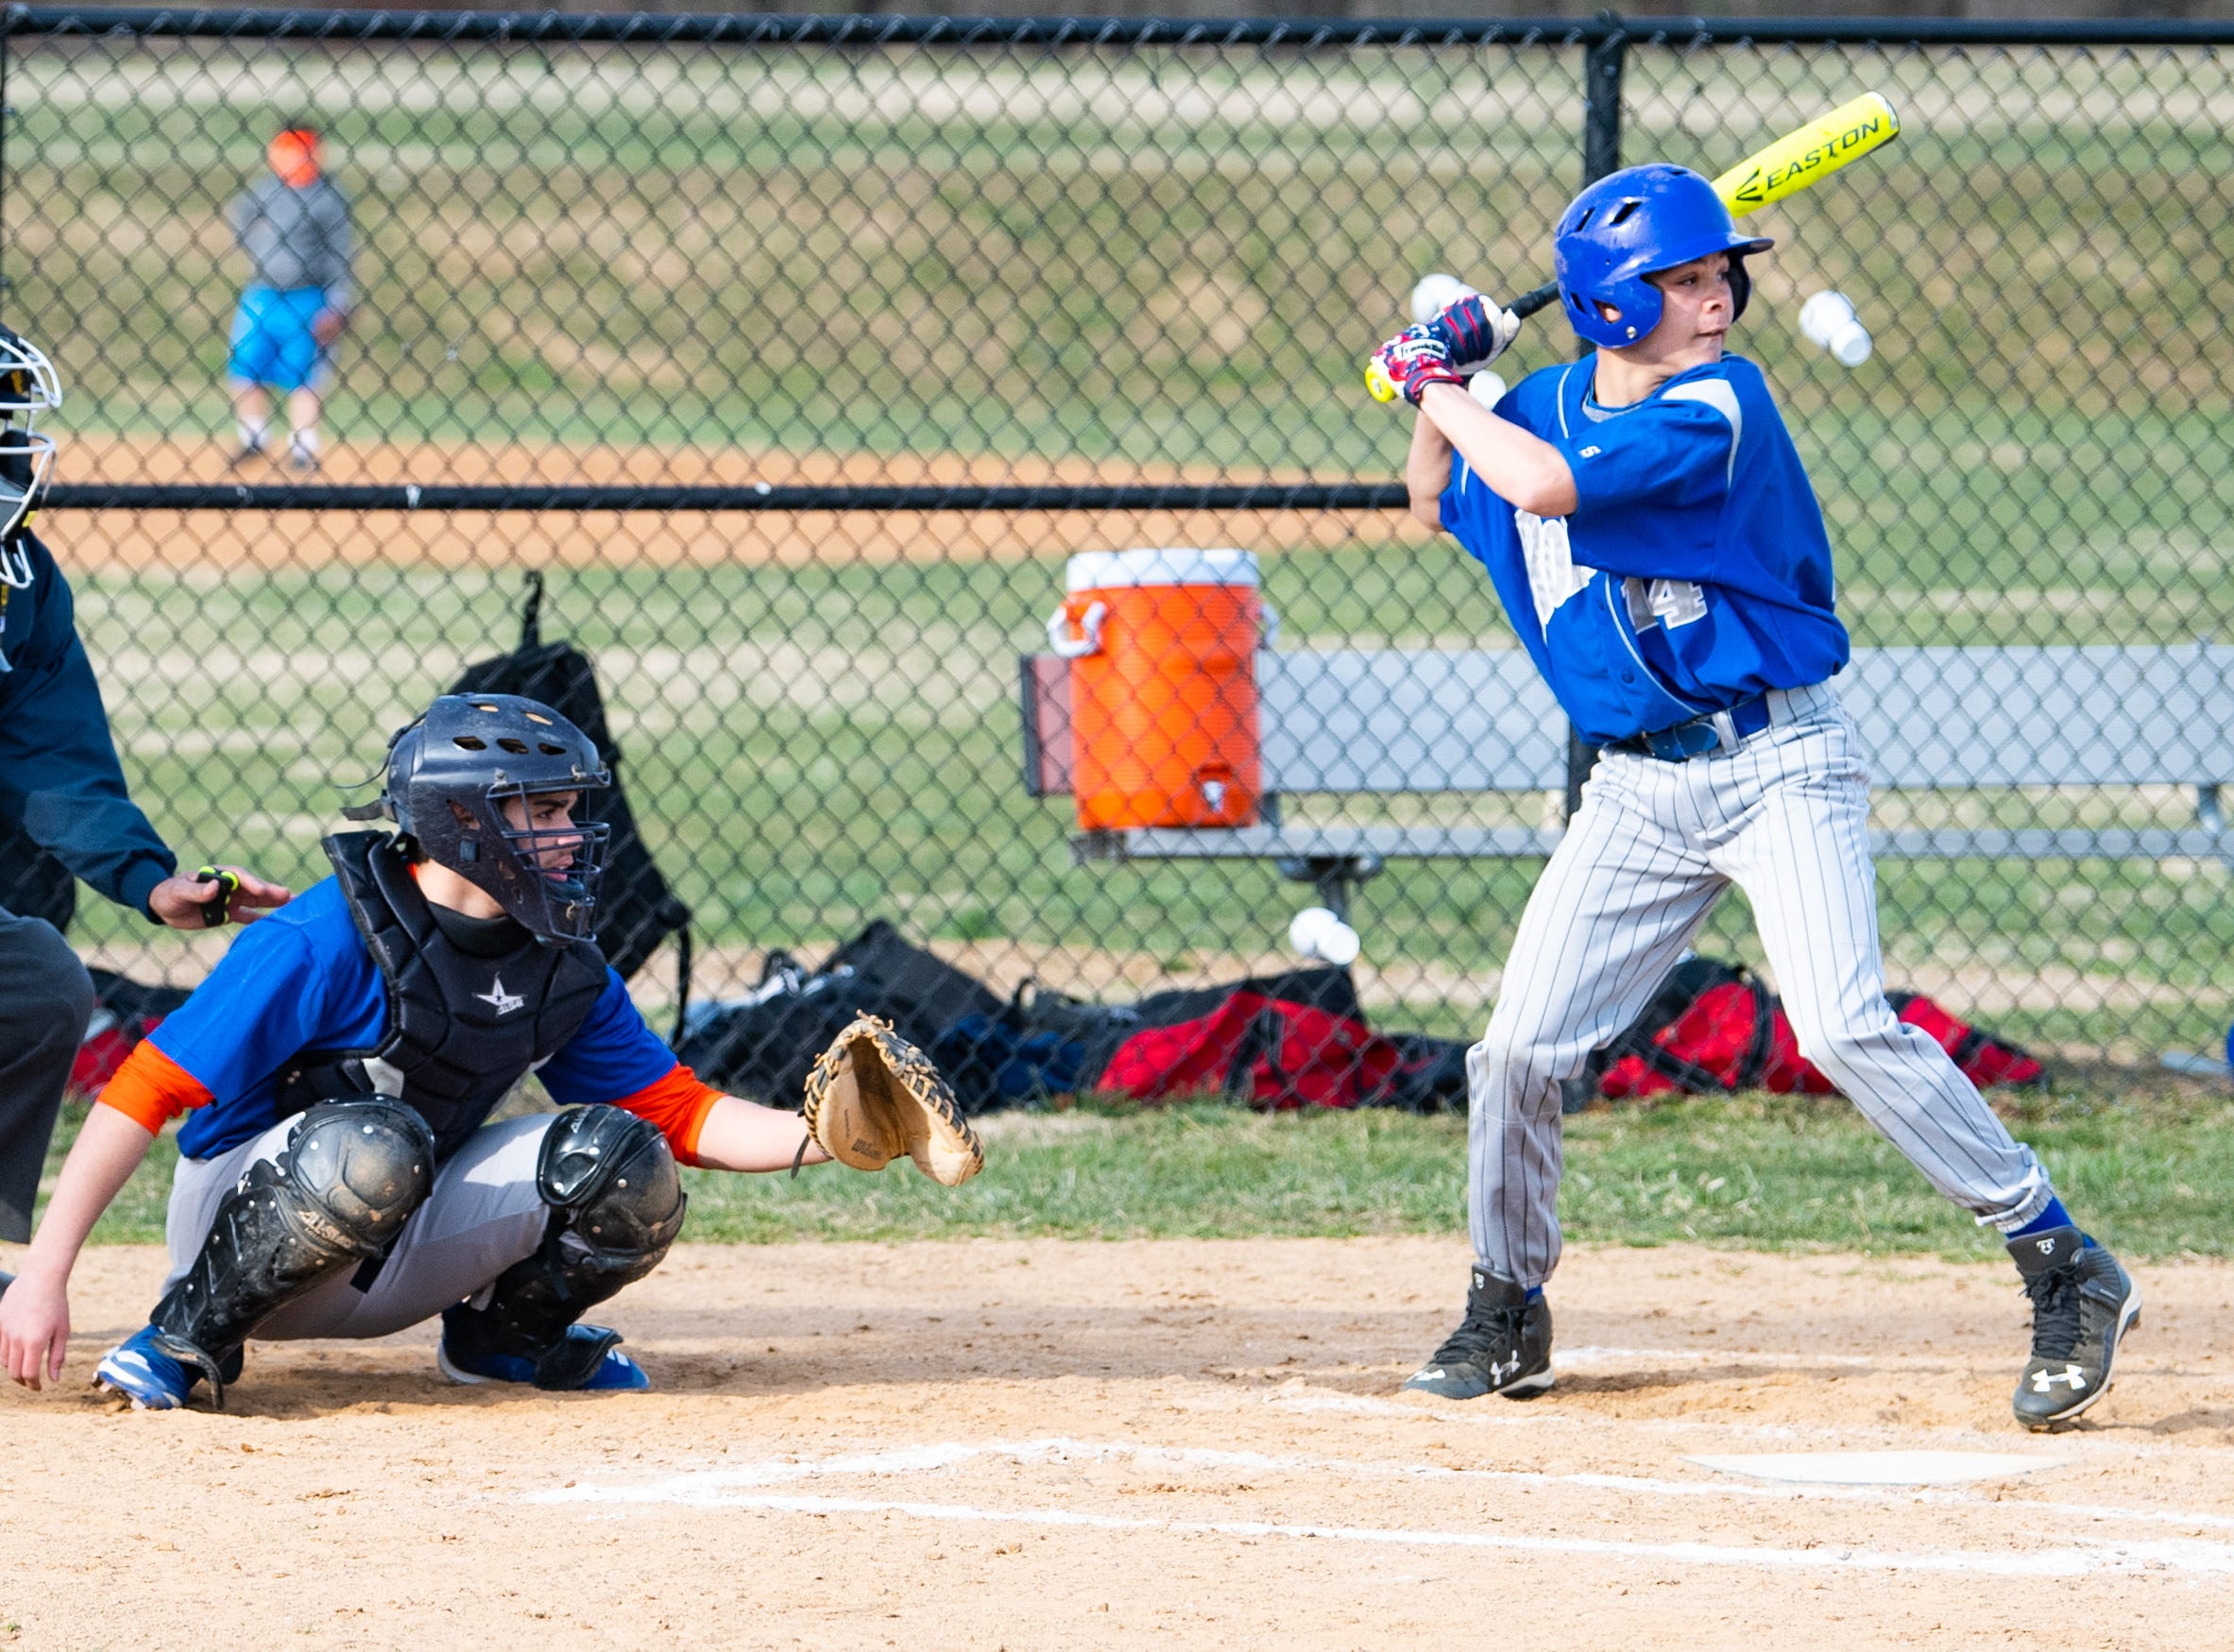 Catcher Bryan Soto (13) sets up to receive the pitch during York High's scrimmage against Steel High, March 20, 2019 at Small Athletic Field.